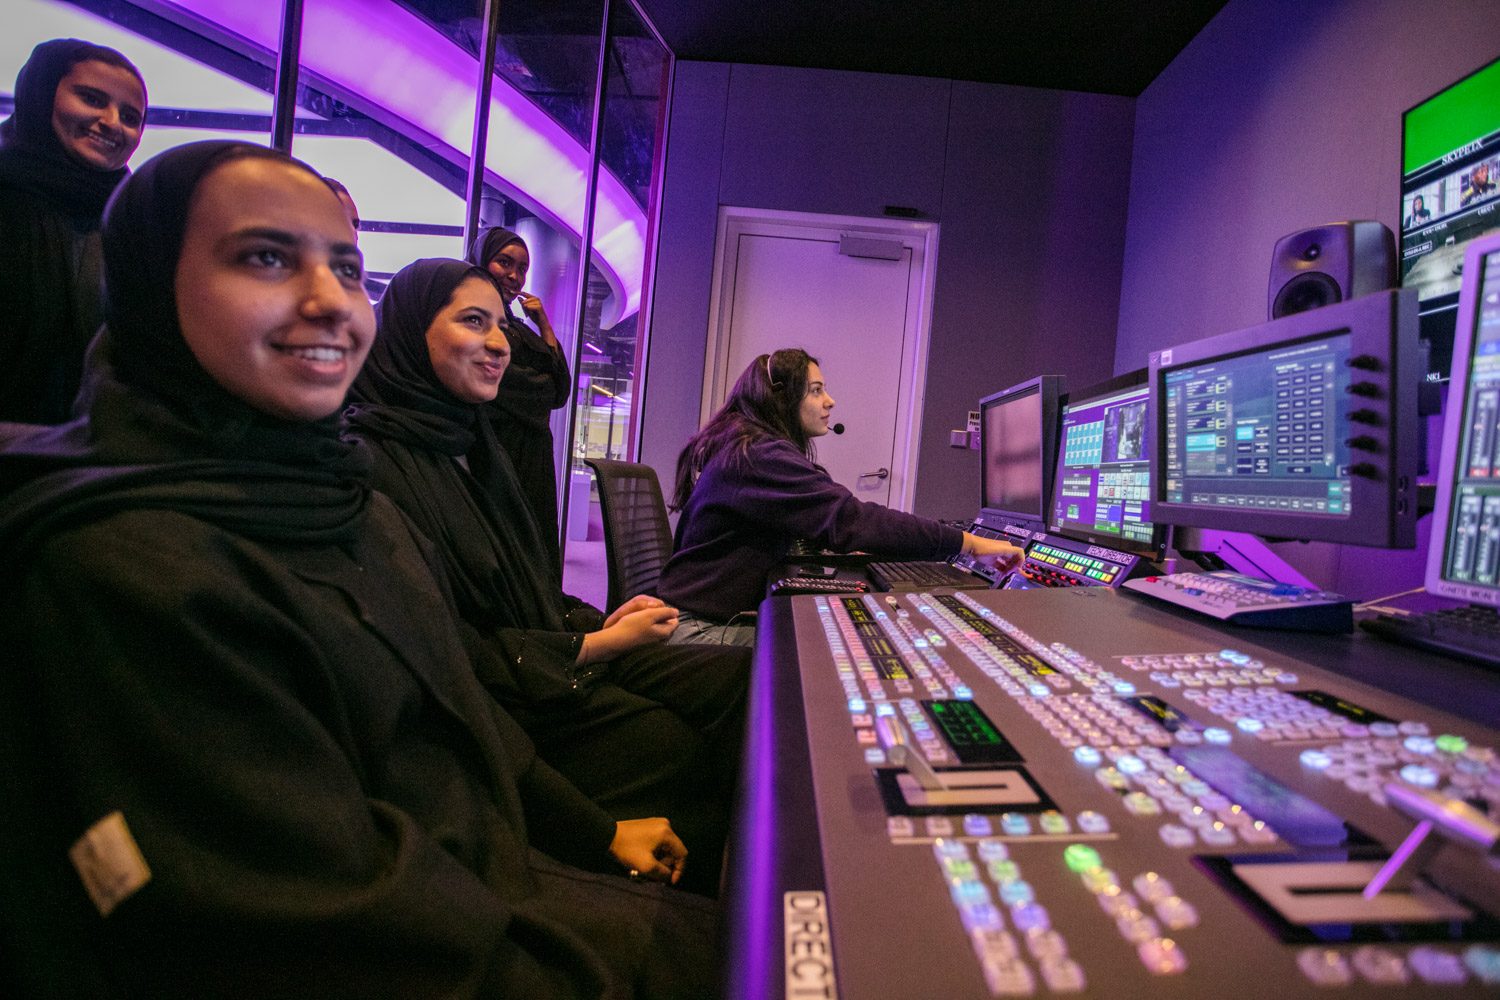 The newsroom includes its own control room and an edit suite to produce graphics and render audio, as well as the ability to produce live reports across multiple platforms.